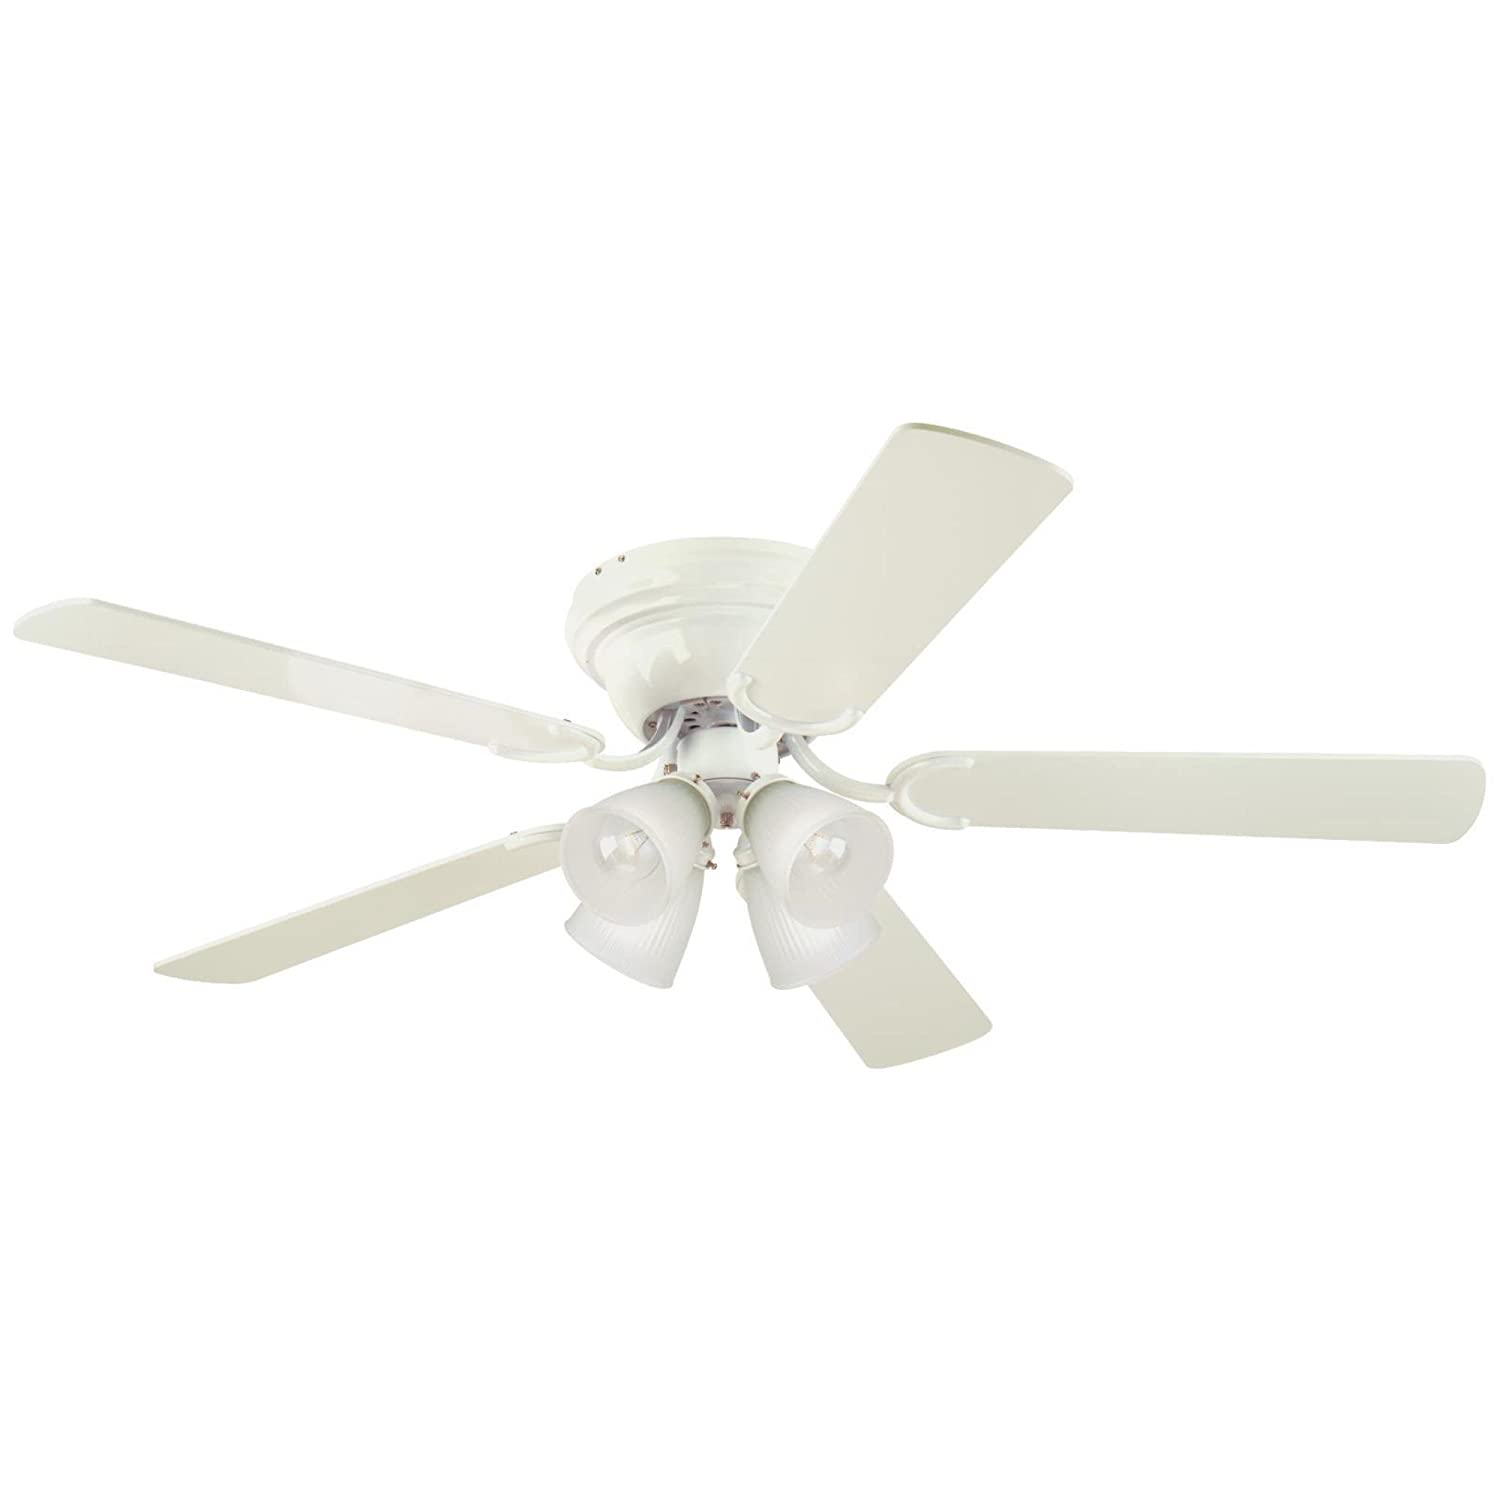 Westinghouse Lighting 7216400 Contempra IV Four-Light 52-Inch Reversible Five-Blade Indoor Ceiling Fan, White with Frosted Ribbed-Glass Shades, Includes Bulbs